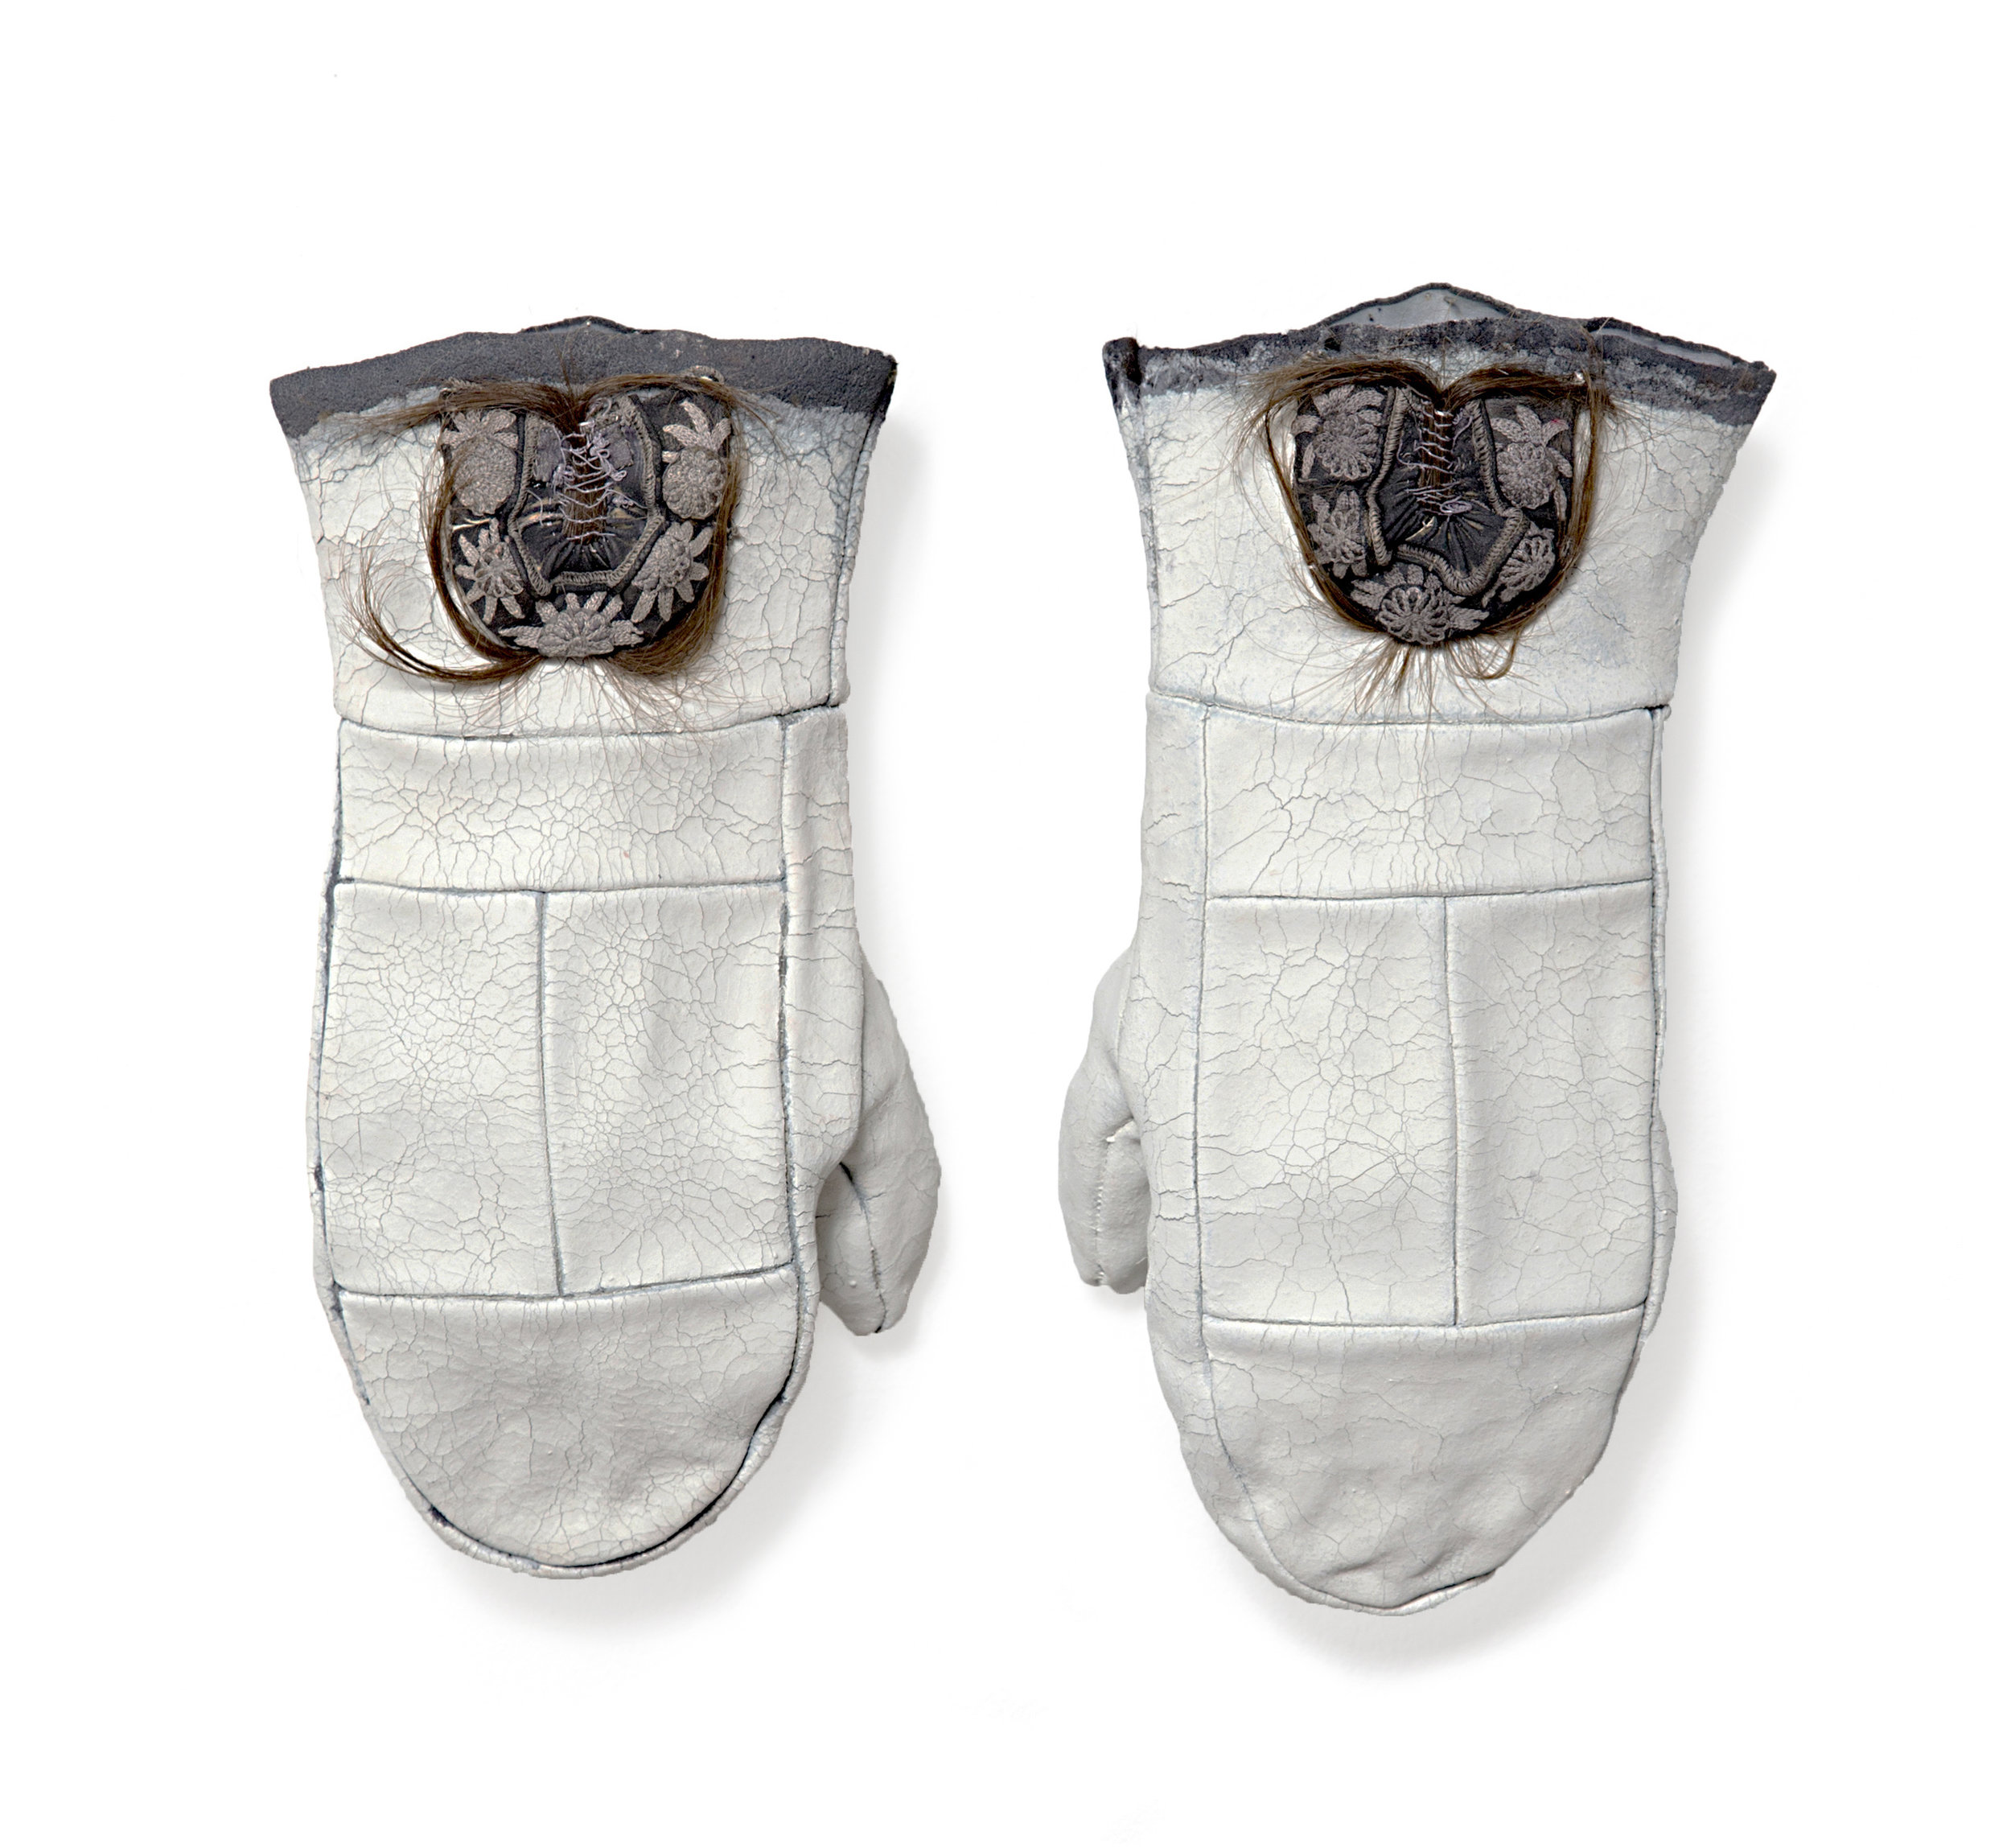 """untitled mittens , leather, milk paint, hair, 11""""x6""""x2.5"""" each, 2016"""